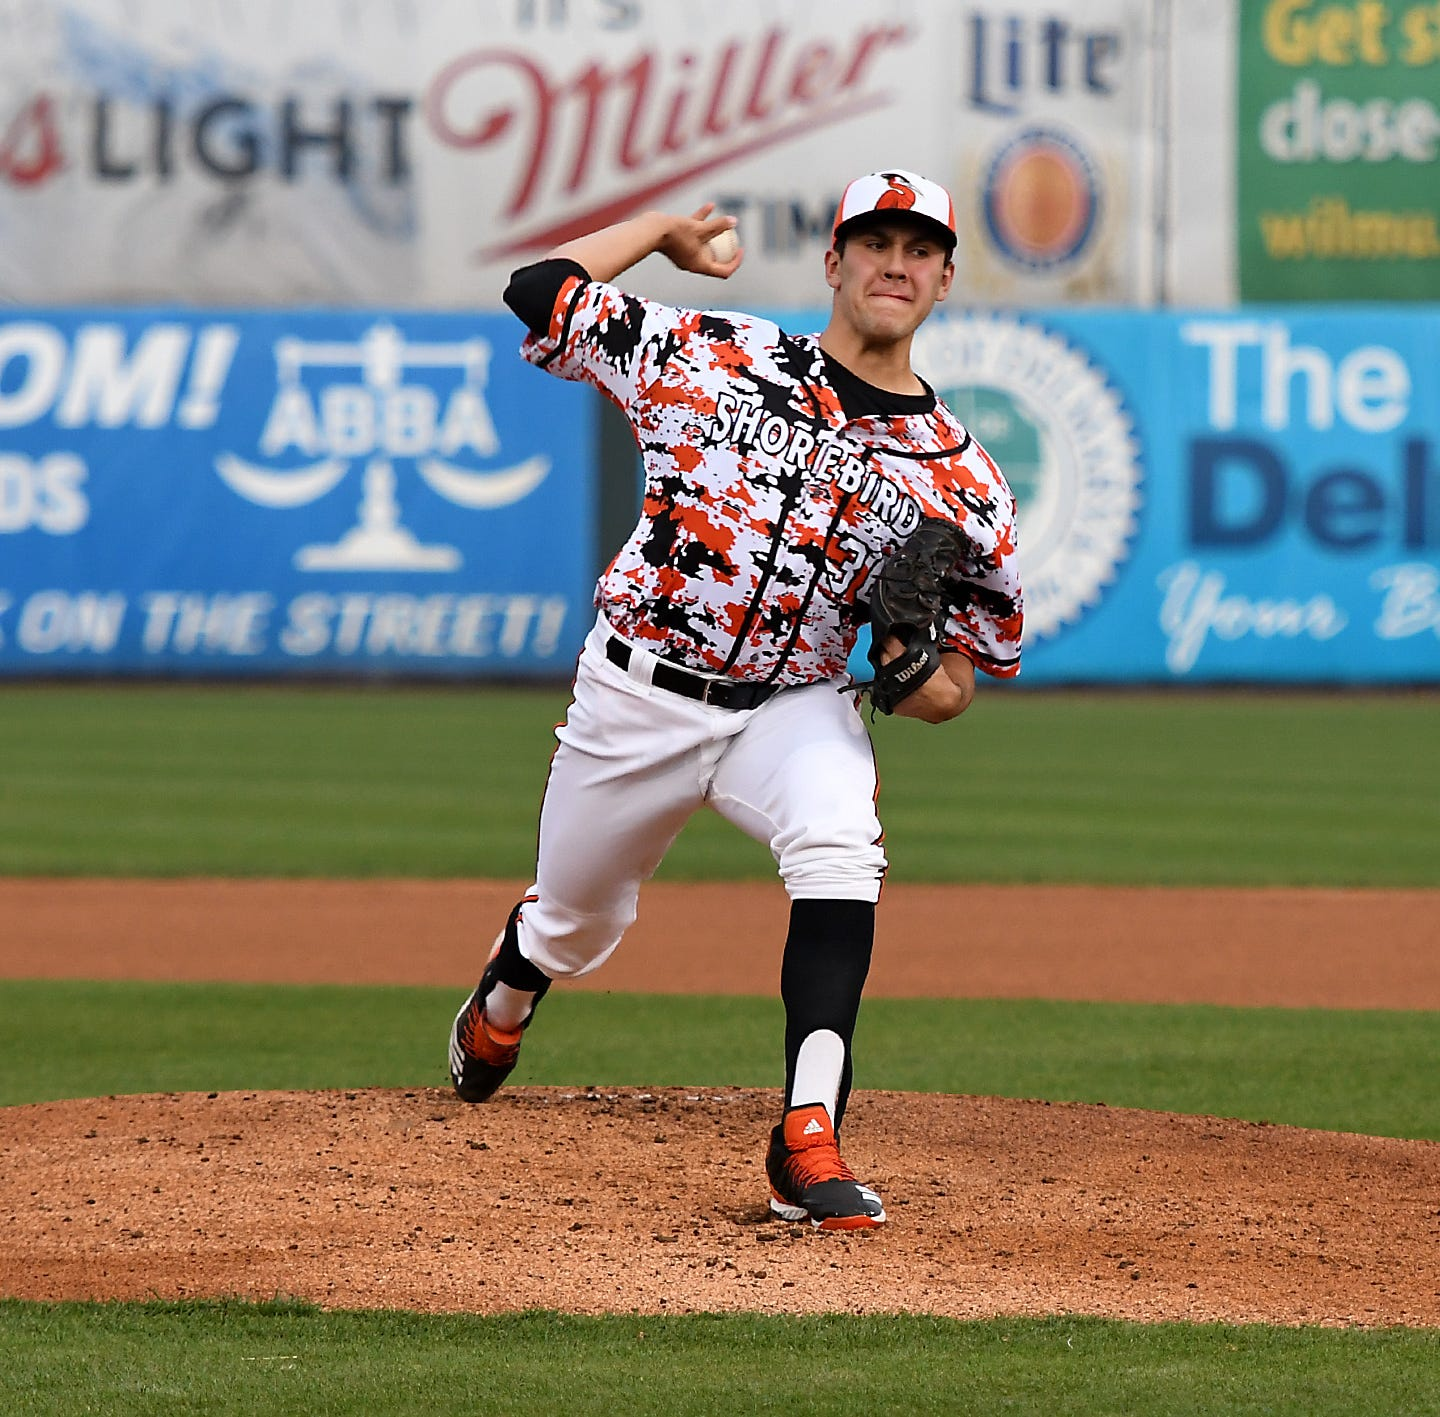 Orioles' top pick Grayson Rodriguez living up to expectations with Delmarva Shorebirds